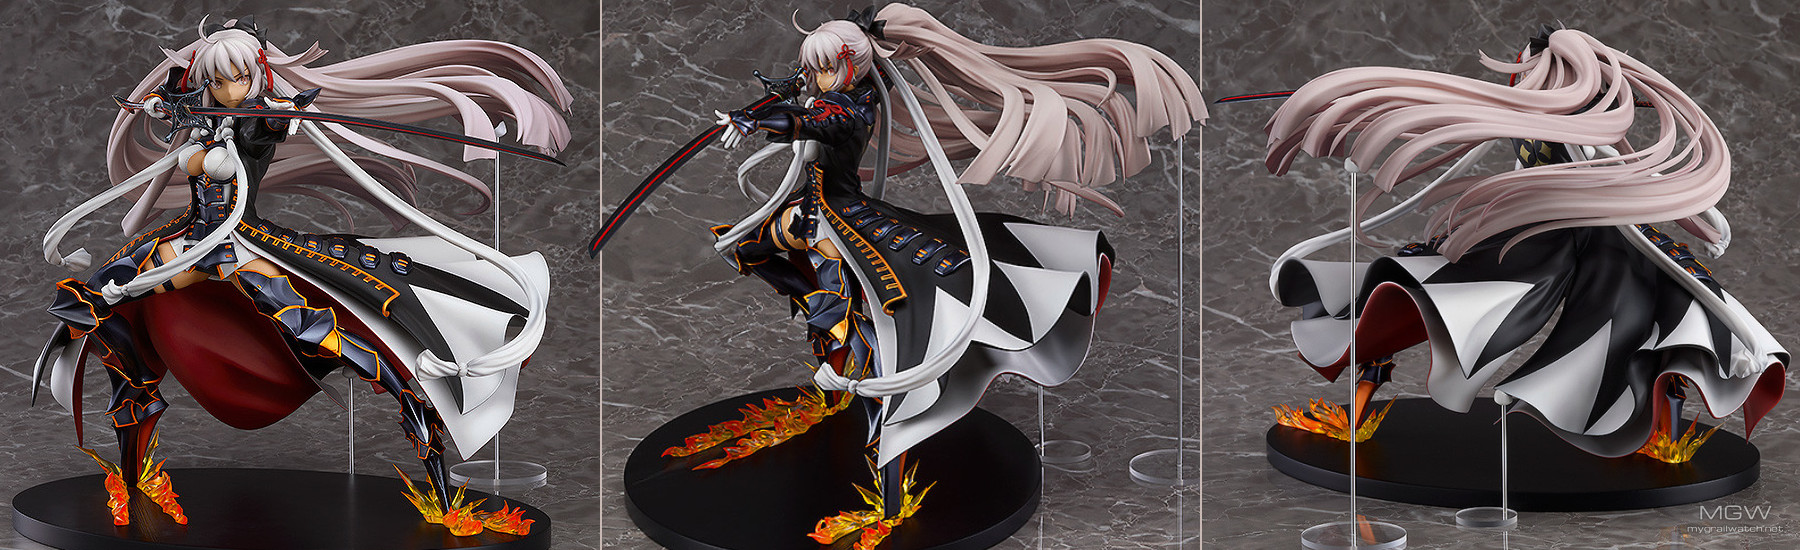 Alter Ego/Okita Souji (Alter) Absolute Blade Endless Three Stage MyGrailWatch Anime Figure Pre-order Guide